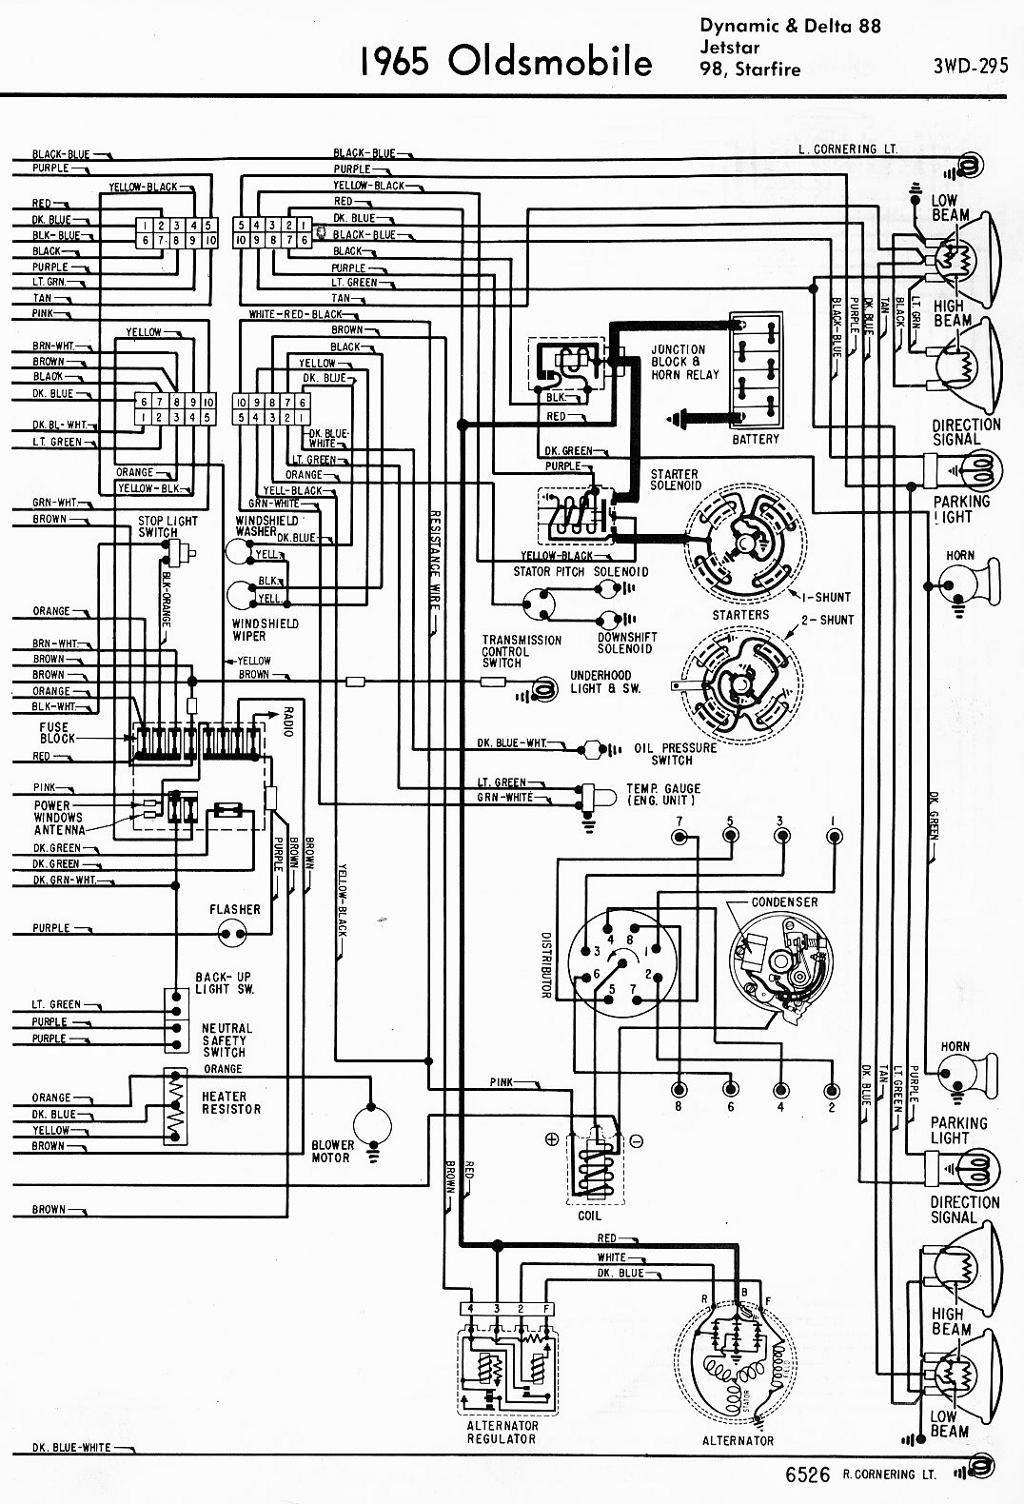 hight resolution of 1998 oldsmobile 88 wiring diagram wiring diagram for professional u2022 1955 oldsmobile 88 wiring diagram oldsmobile 88 wiring diagram